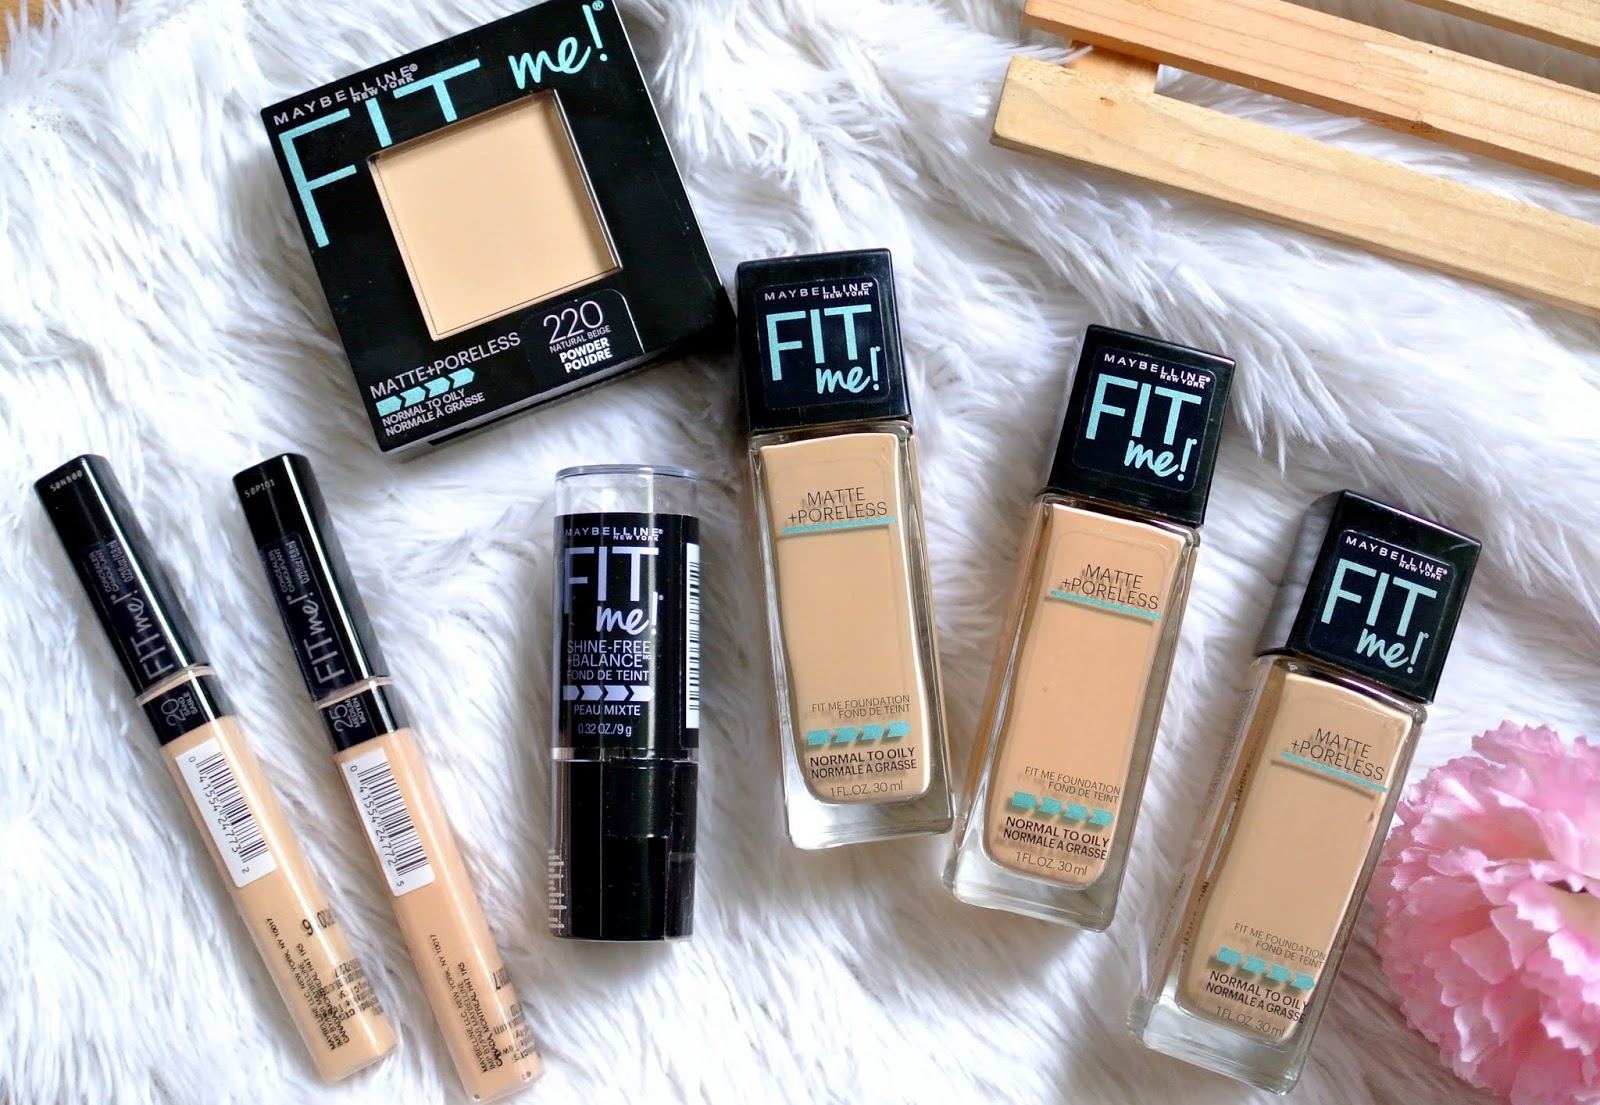 Makeuplove Beauty Fashion And Lifestyle Maybelline Fitme Is Fit Me Concealer Medium Matte Poreless Liquid Foundation The Stick Pressed Powder